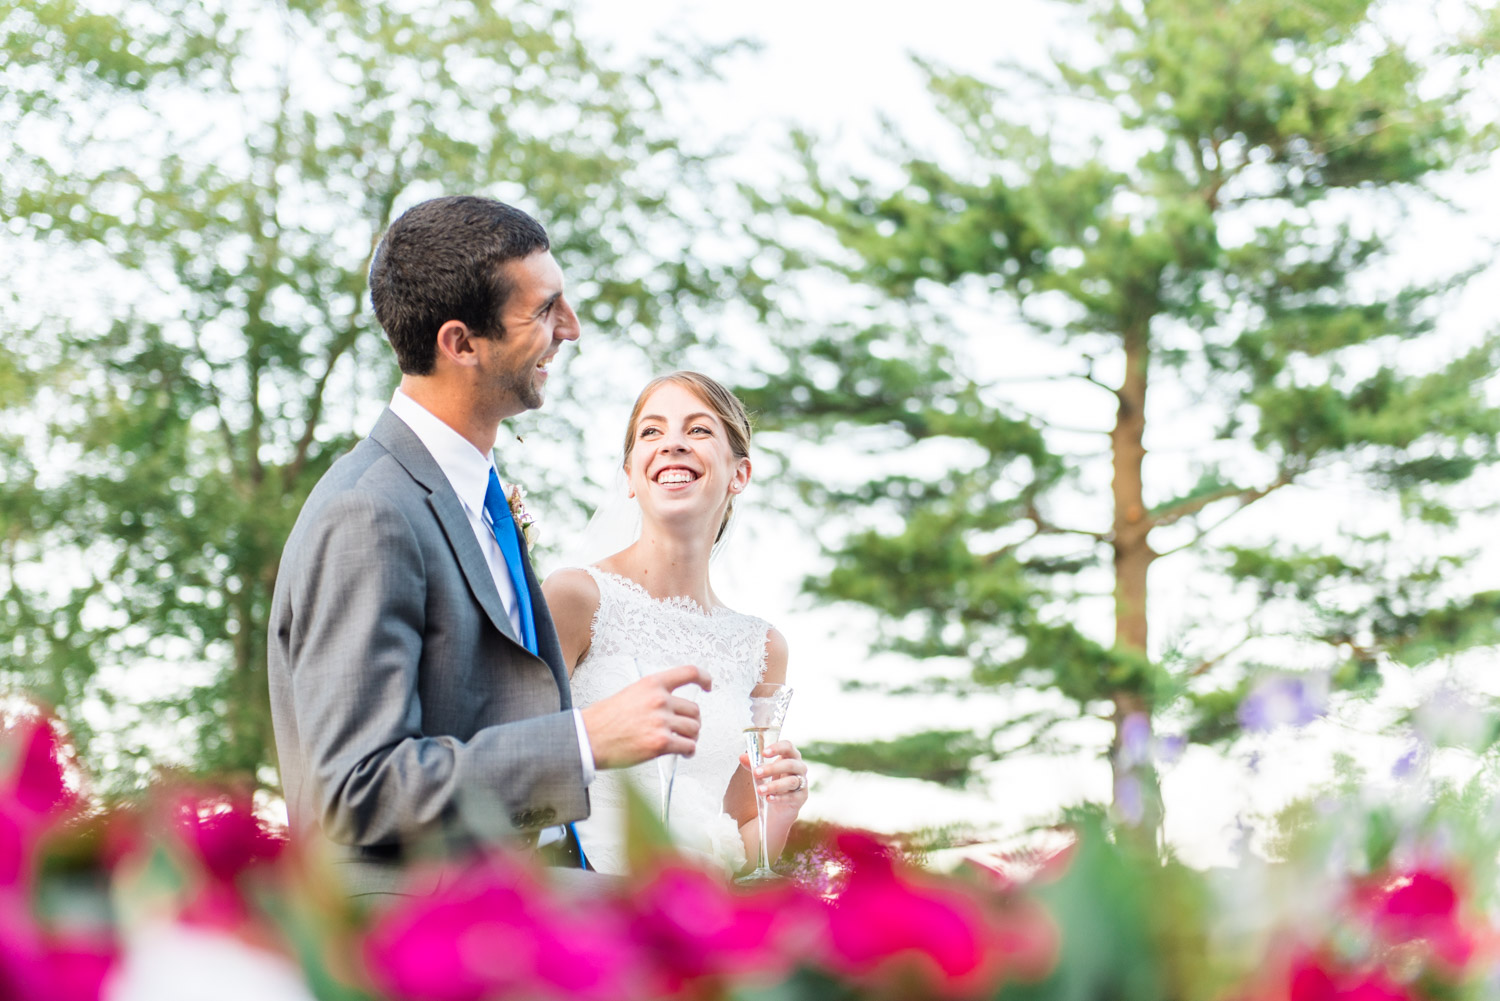 Bride and Groom at Ipswich Country Club | Boston Wedding and Portrait Photography for the Openhearted | Lorna Stell Photo